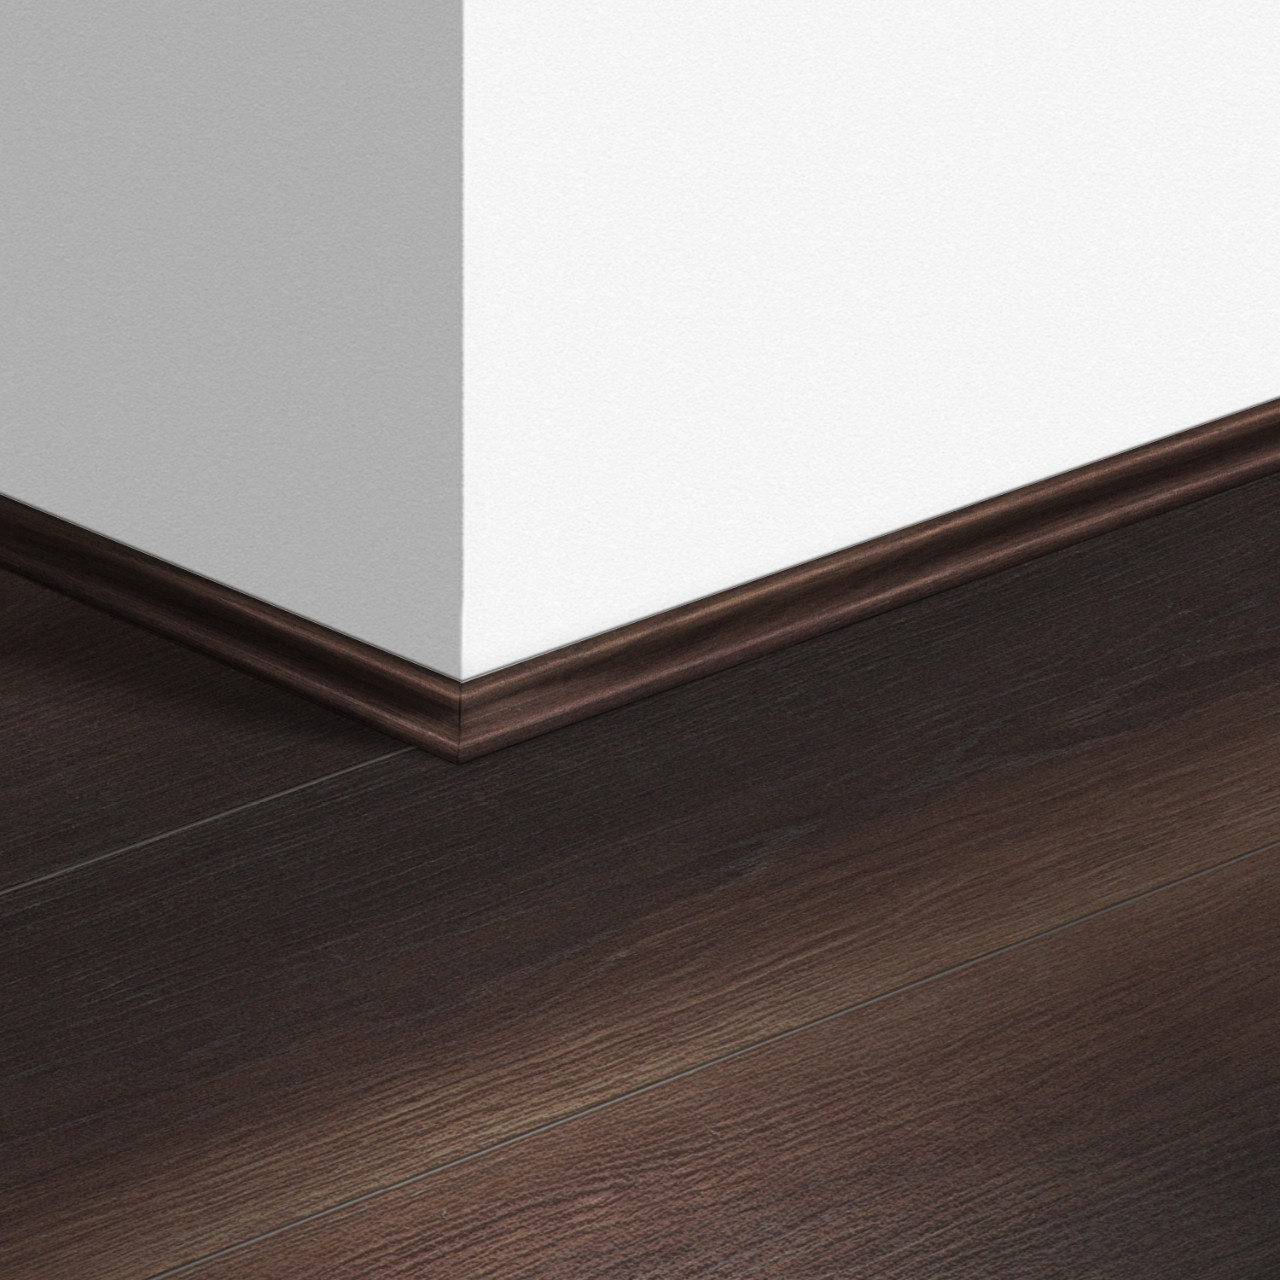 QSSCOT Laminate Accessories Fumed oak dark QSSCOT01540